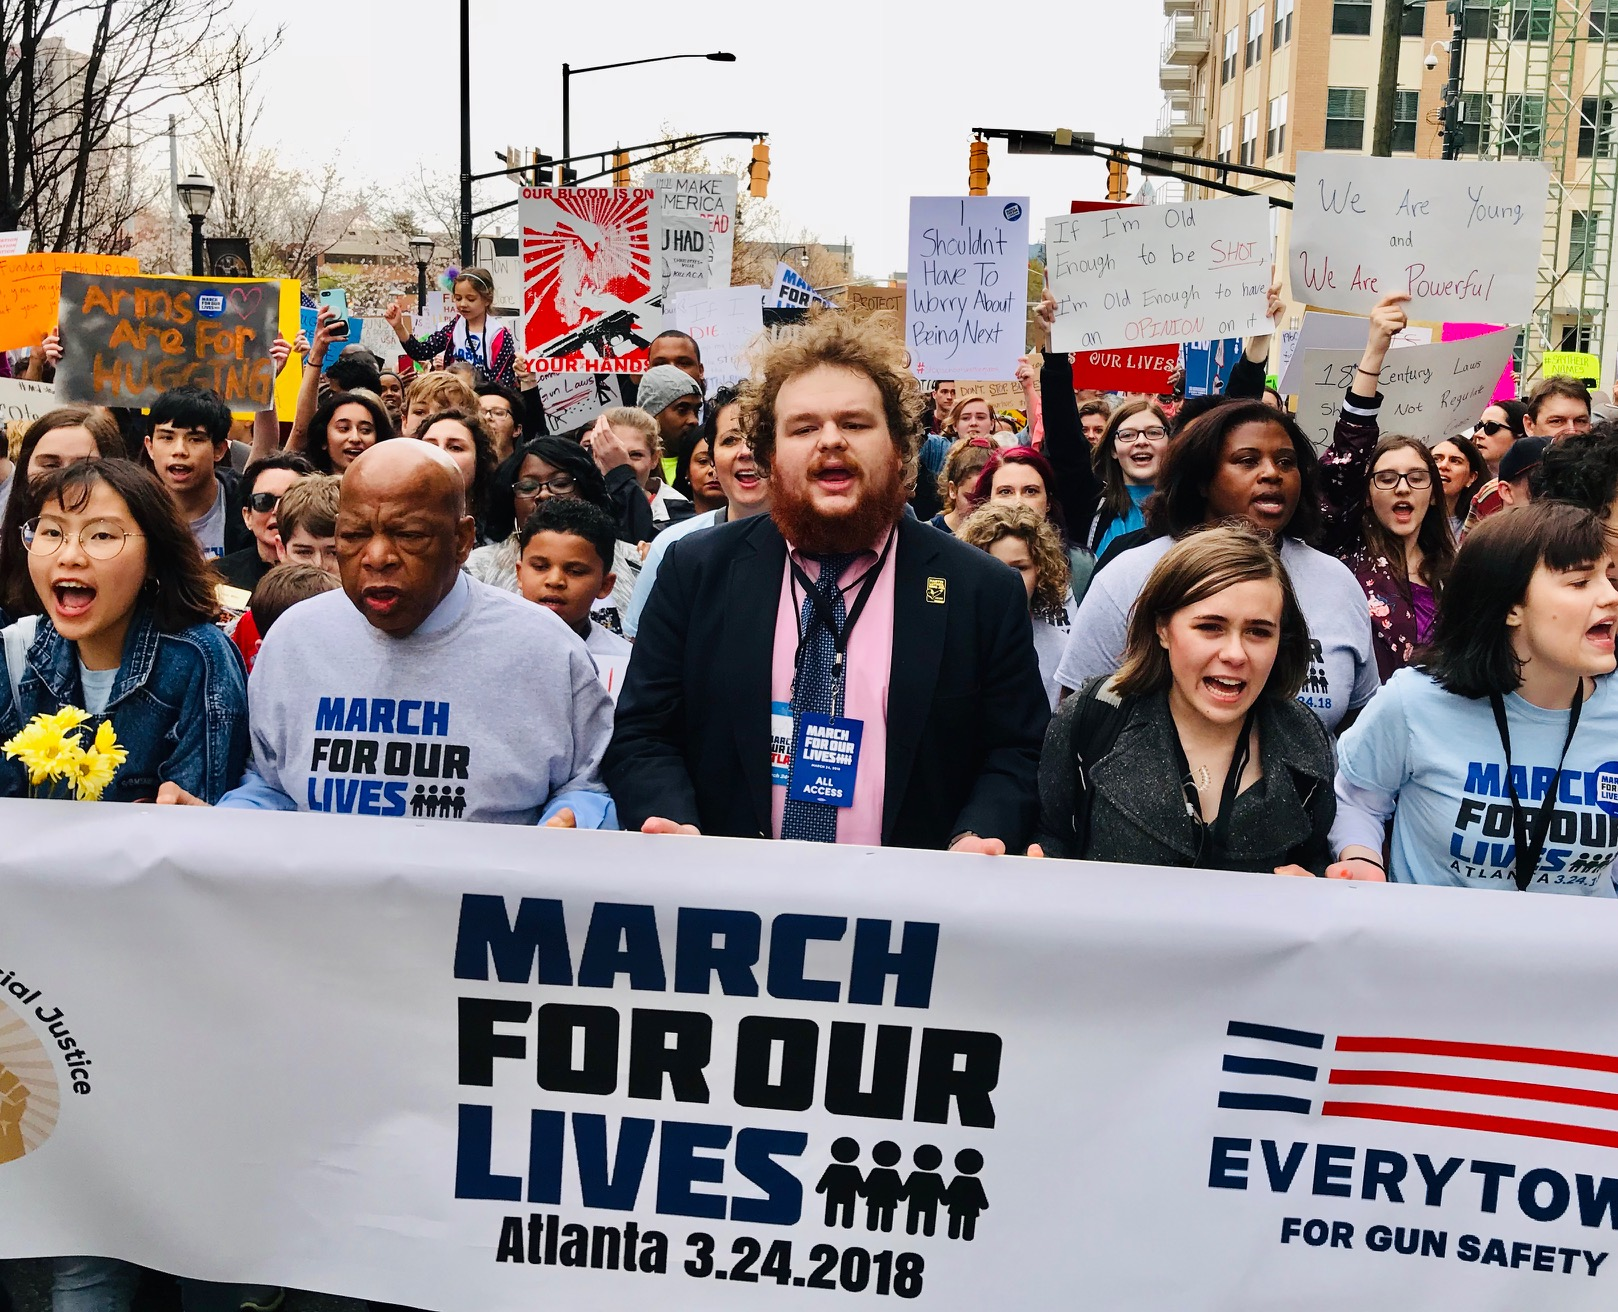 March-for-our-lives-john-lewis